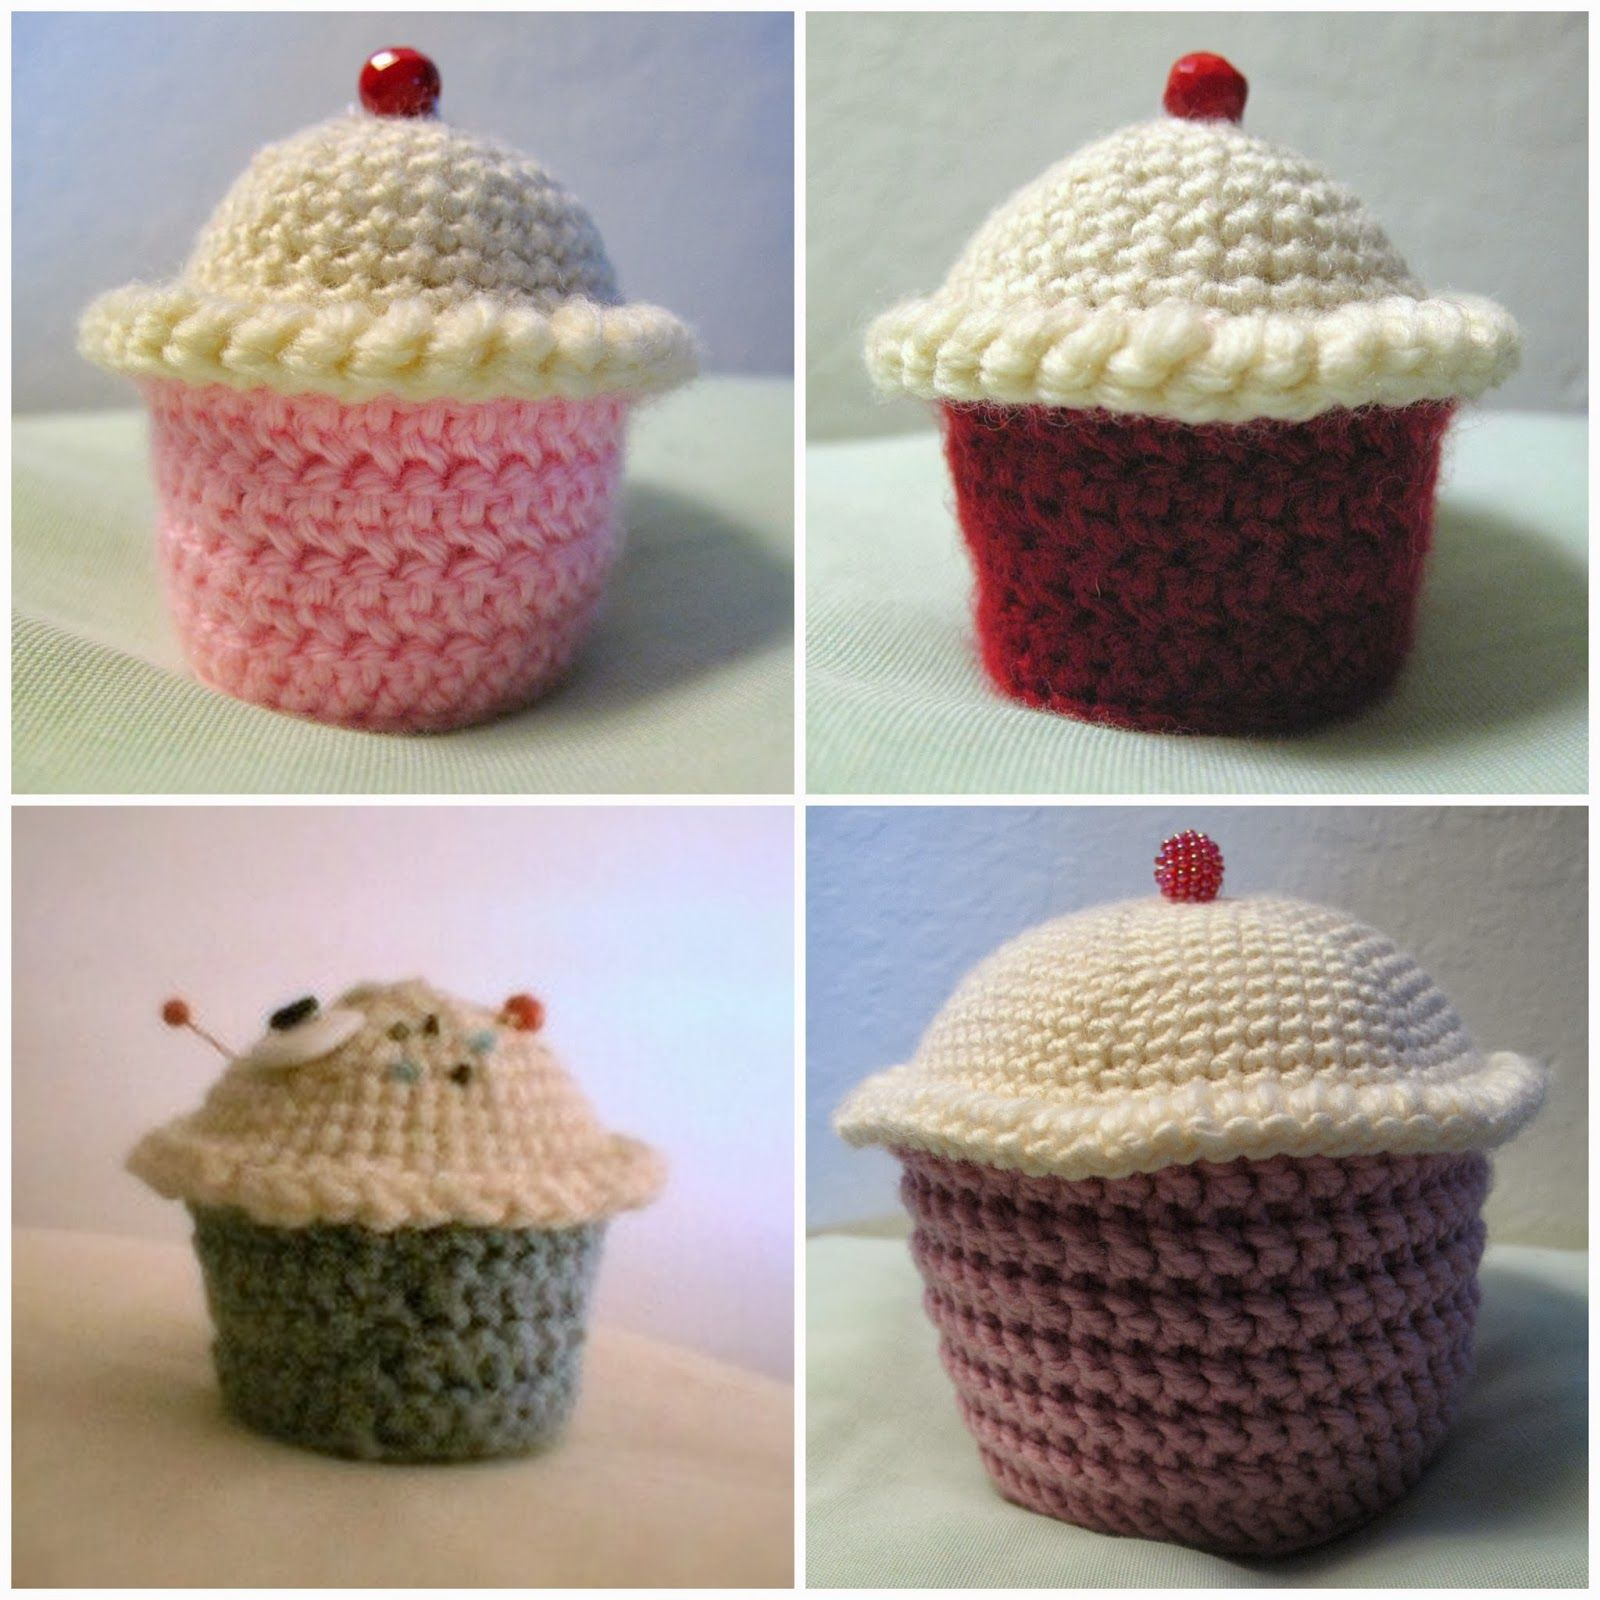 Oh the cuteness free crochet pattern amigurumi cupcakes whip free crochet pattern amigurumi cupcakes whip up something sweet bankloansurffo Choice Image